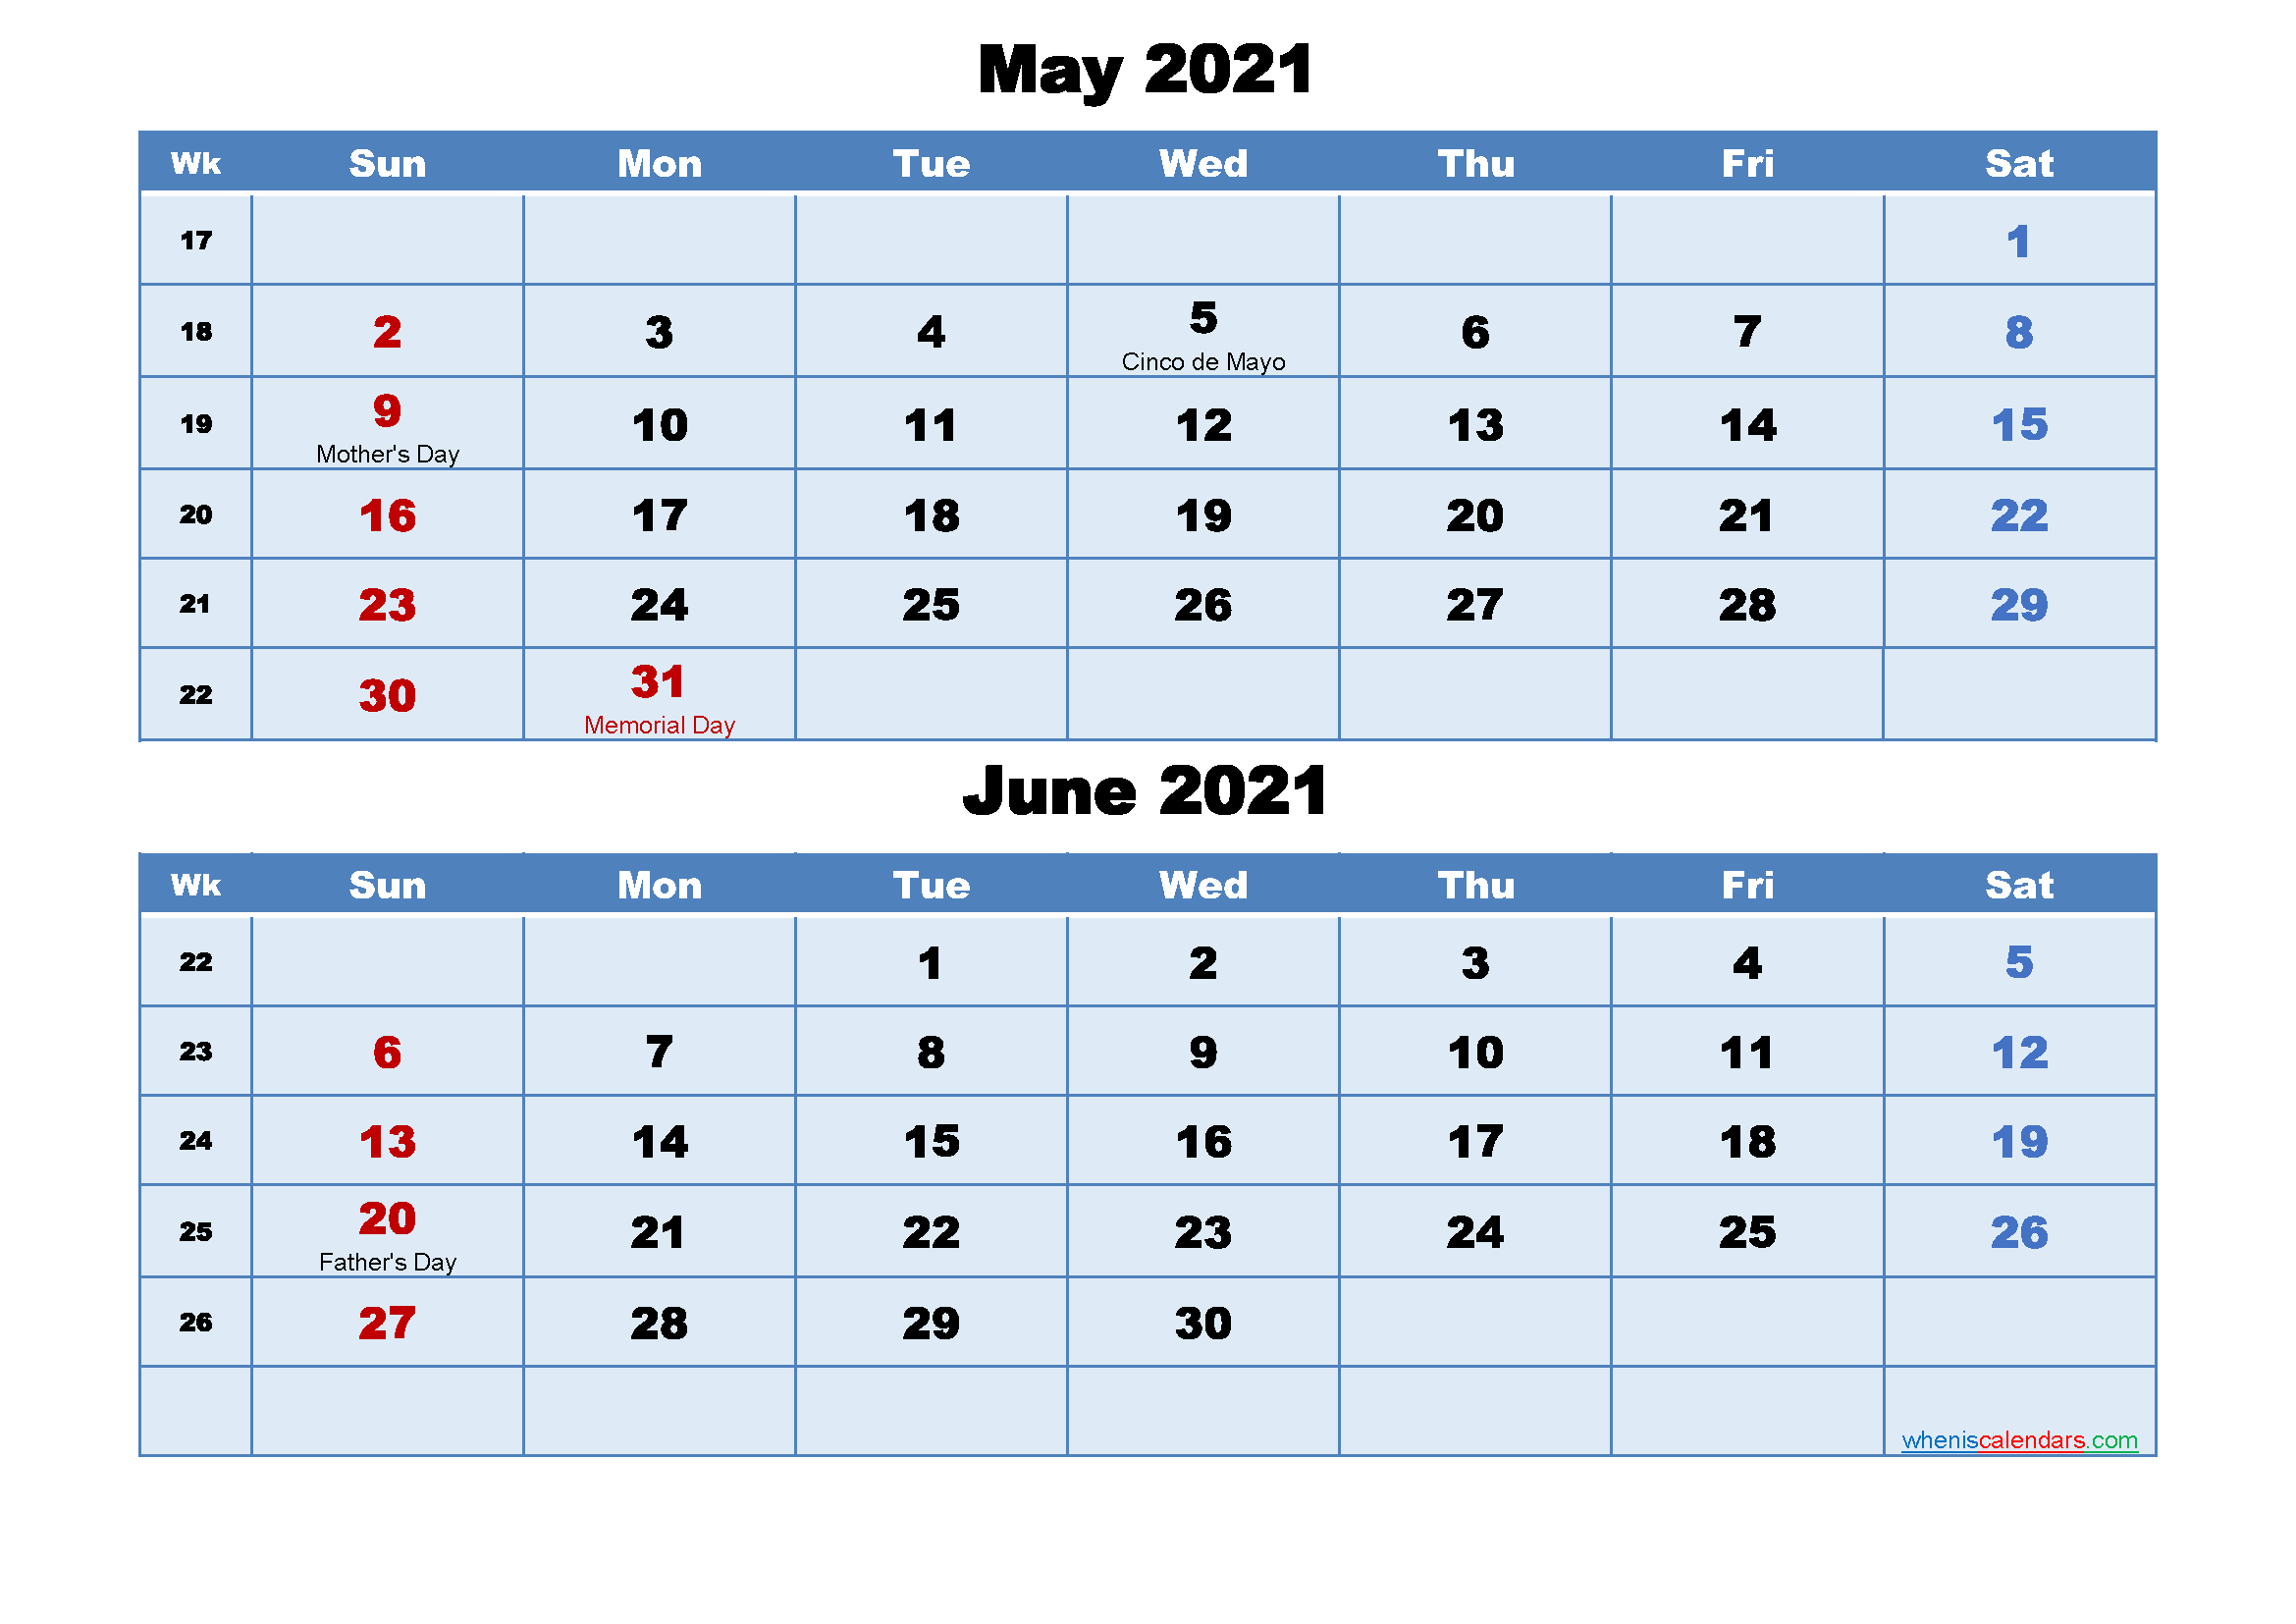 Calendar Of May And June 2021 May and June 2021 Calendar with Holidays – Free 2020 and 2021